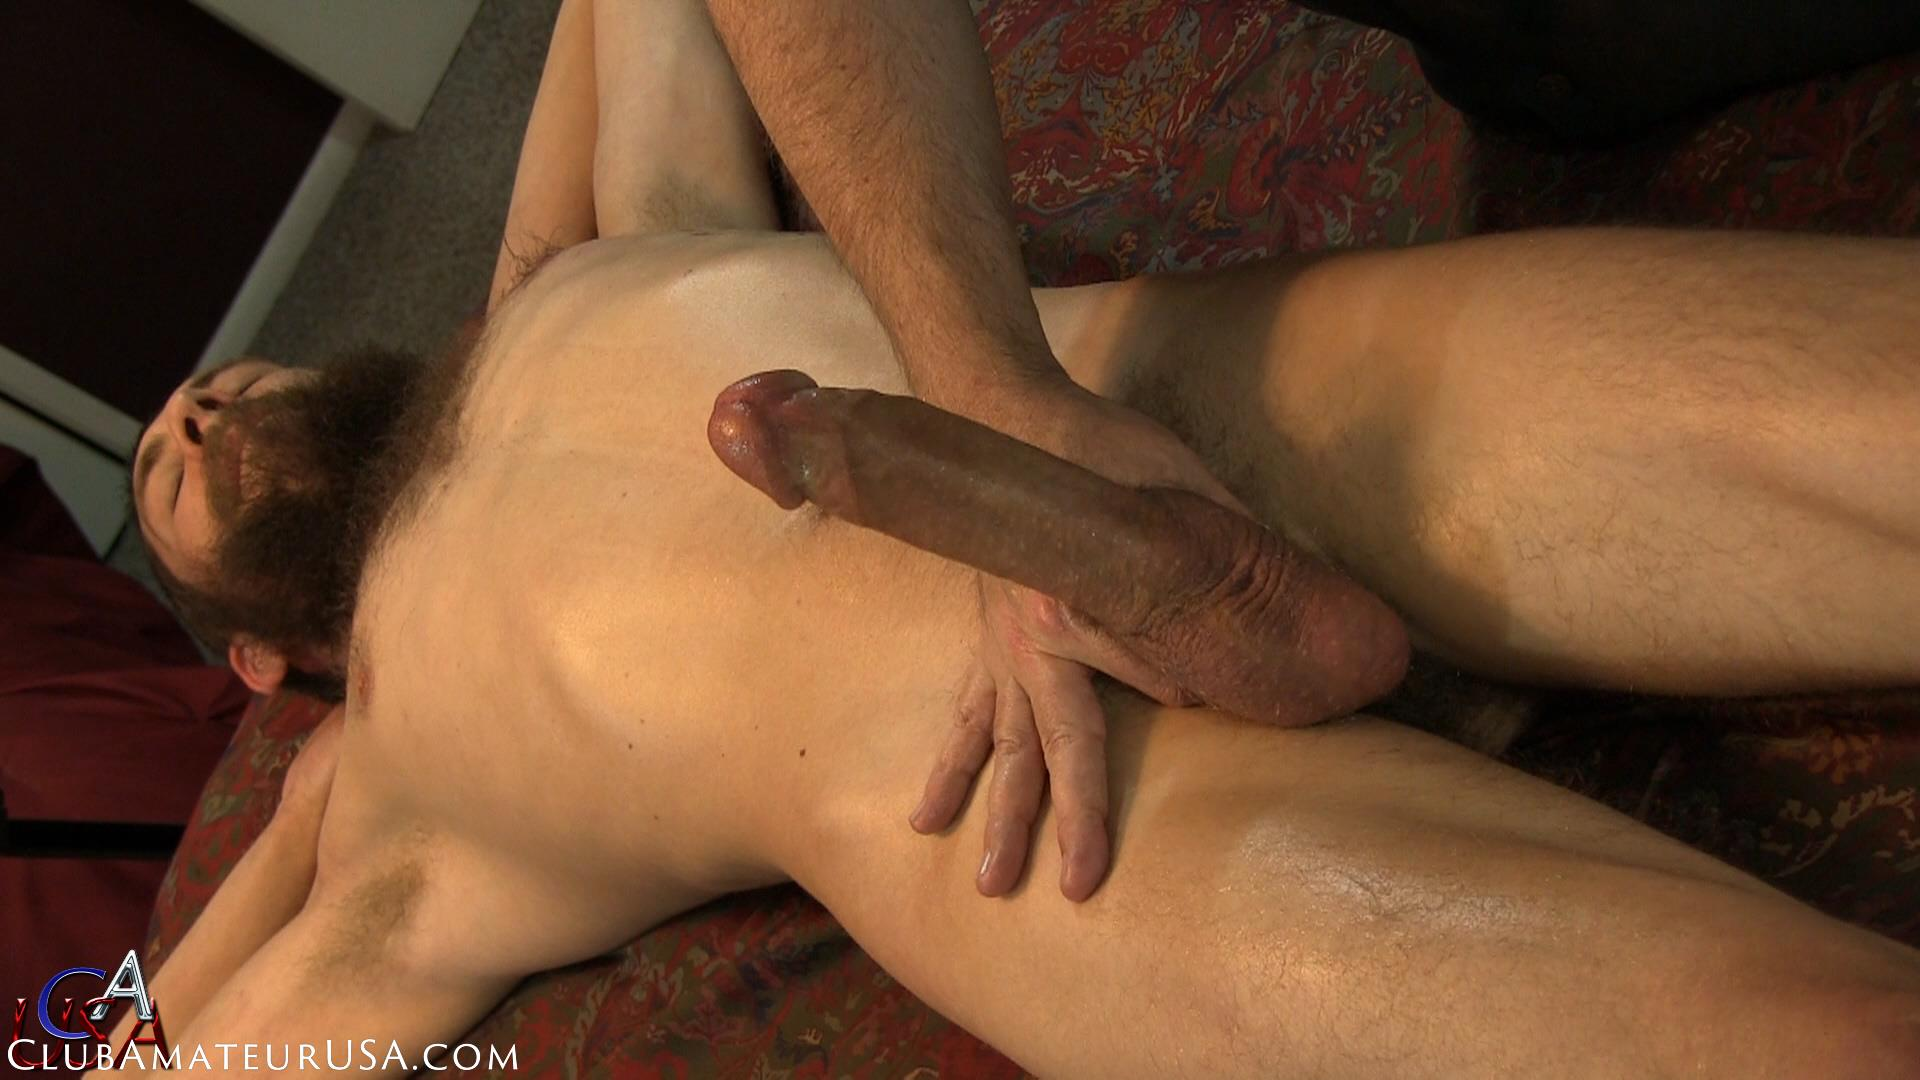 Getting Jerked Off Amateur